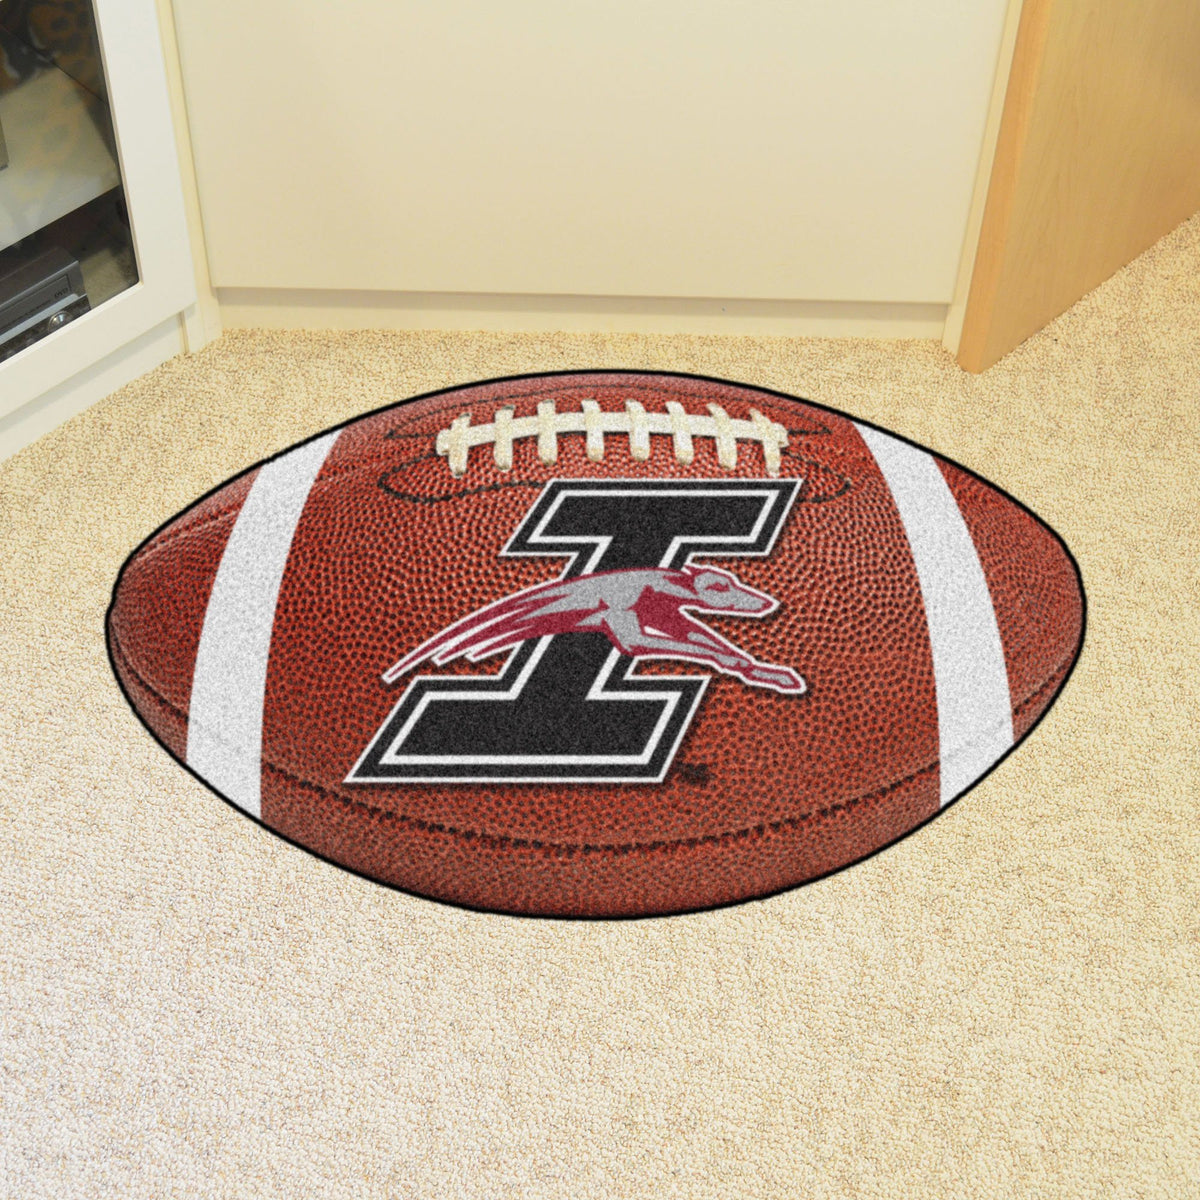 Collegiate - Football Mat: A - K Collegiate Mats, Rectangular Mats, Football Mat, Collegiate, Home Fan Mats Indianapolis